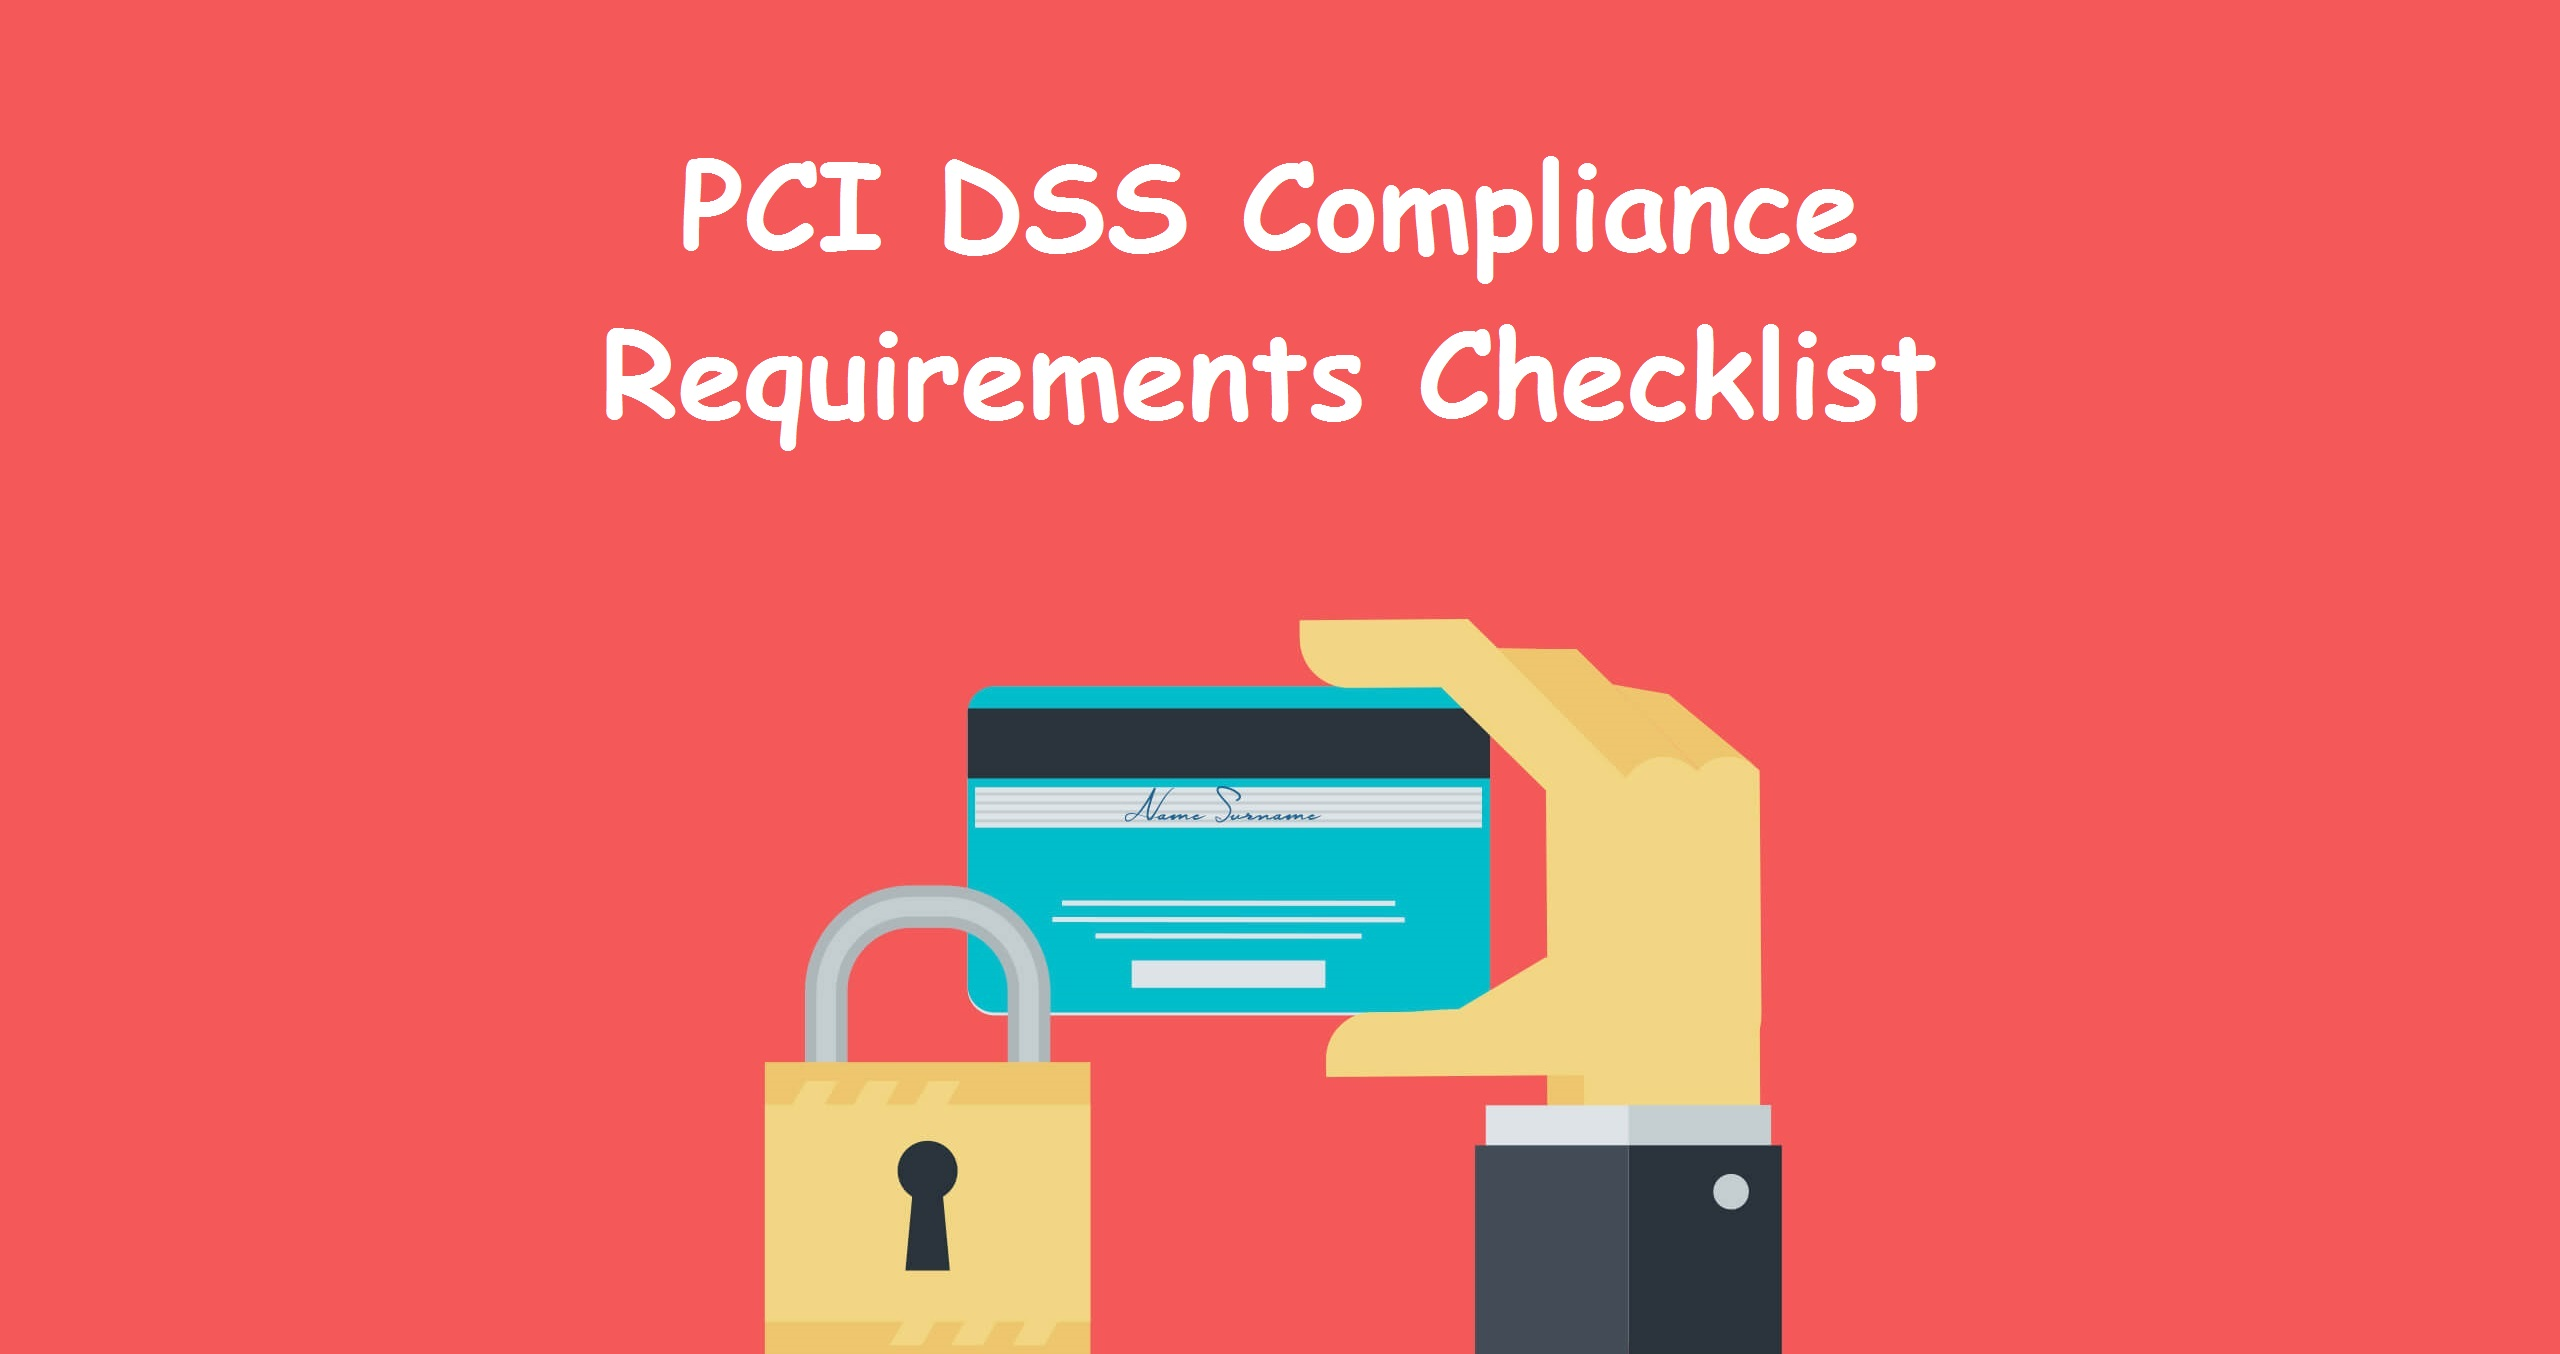 PCI DSS Compliance Requirements Checklist